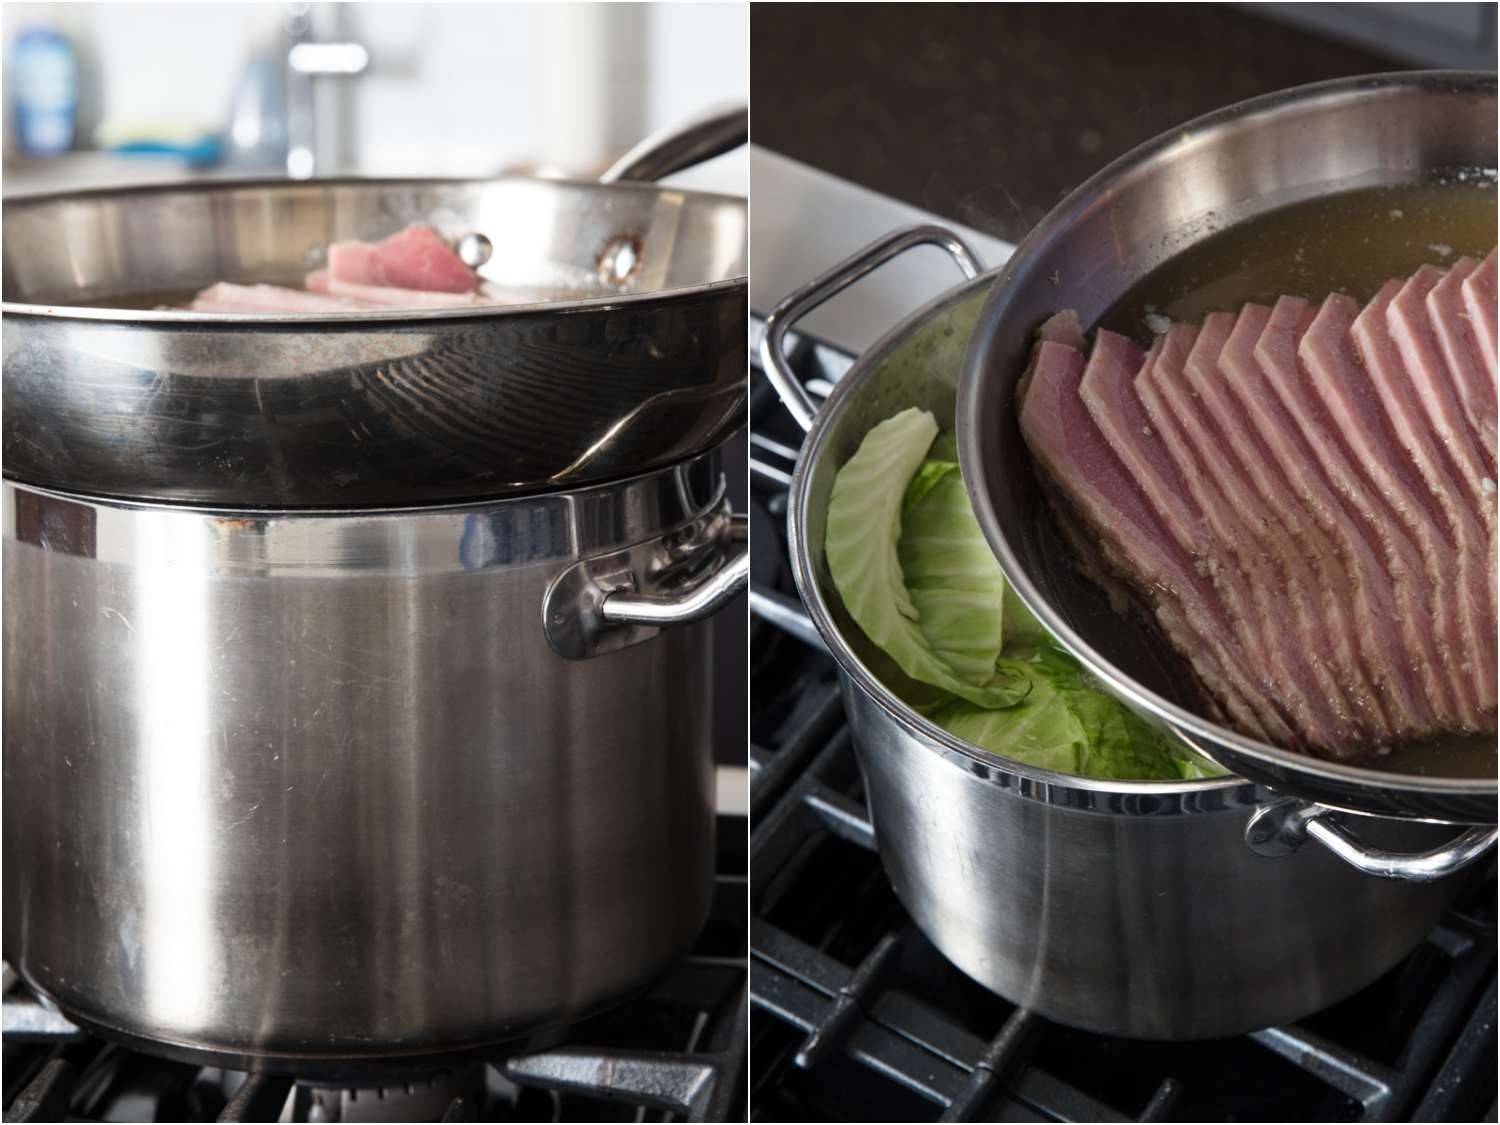 Set up for boiling potatoes, carrots, and cabbage while also warming corned beef slices.